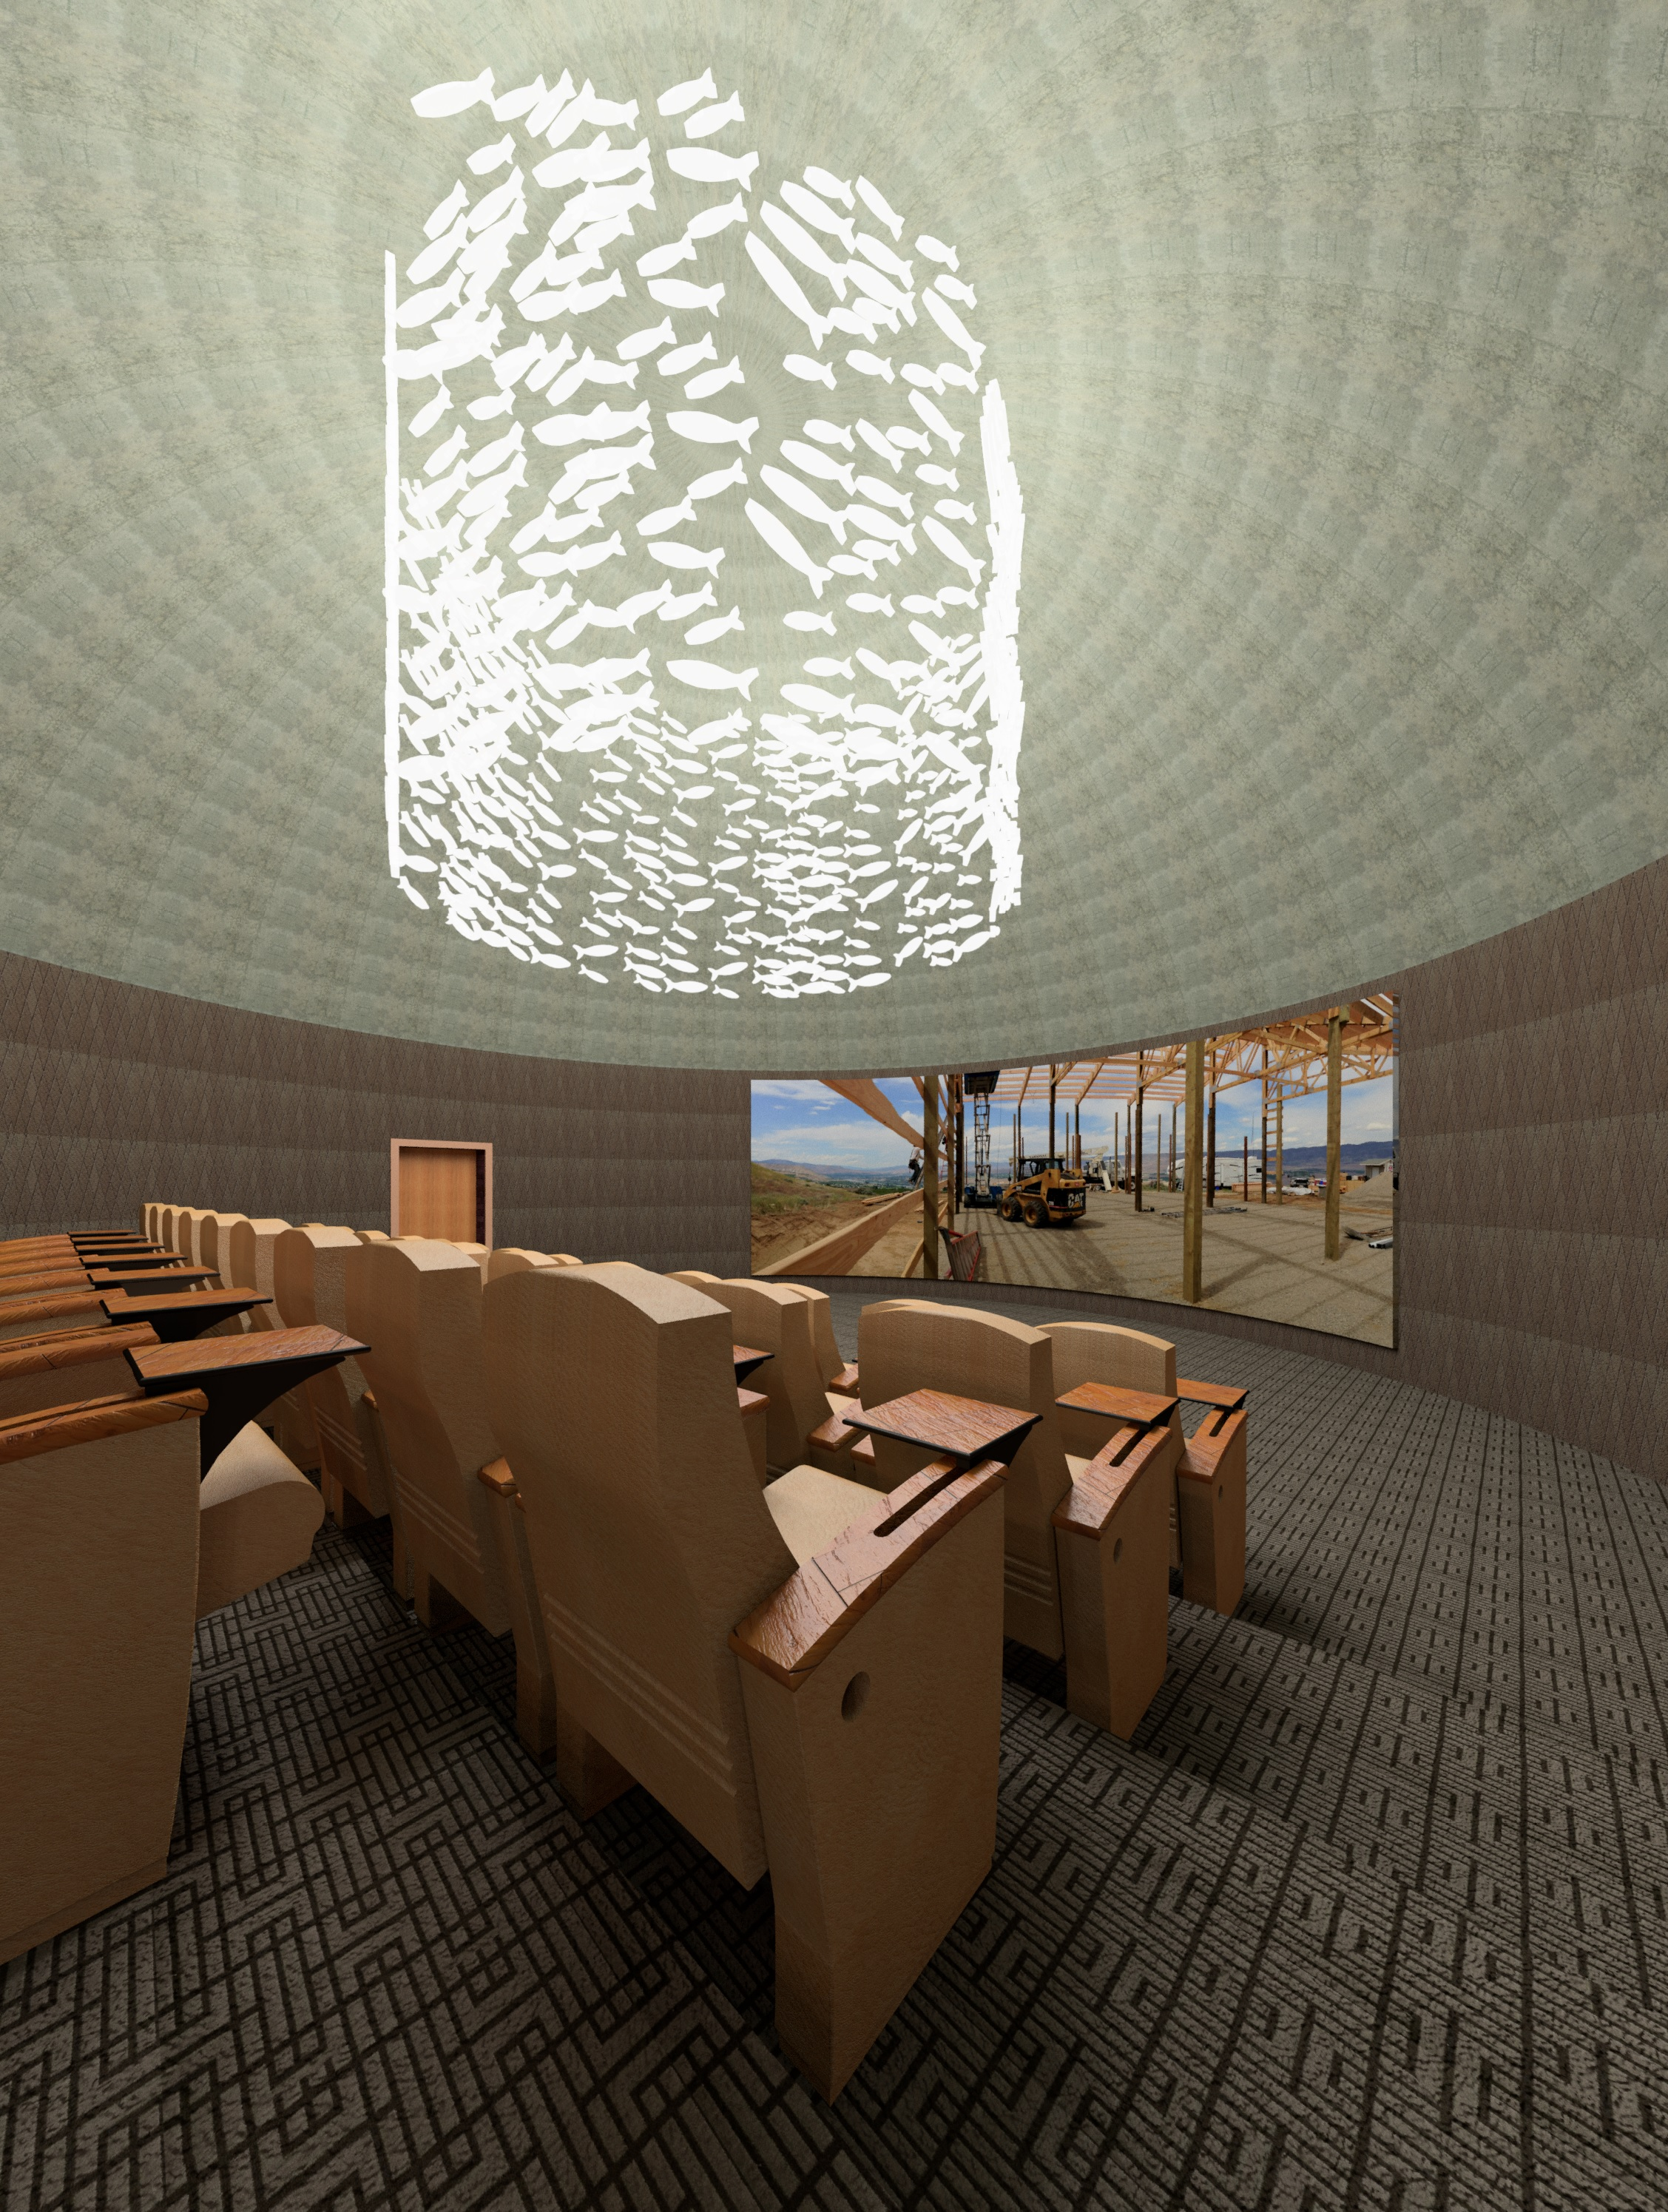 A rendering of the proposed GeoDome. Photo courtesy of Roald Hazelhoff, Southern Environmental Center.